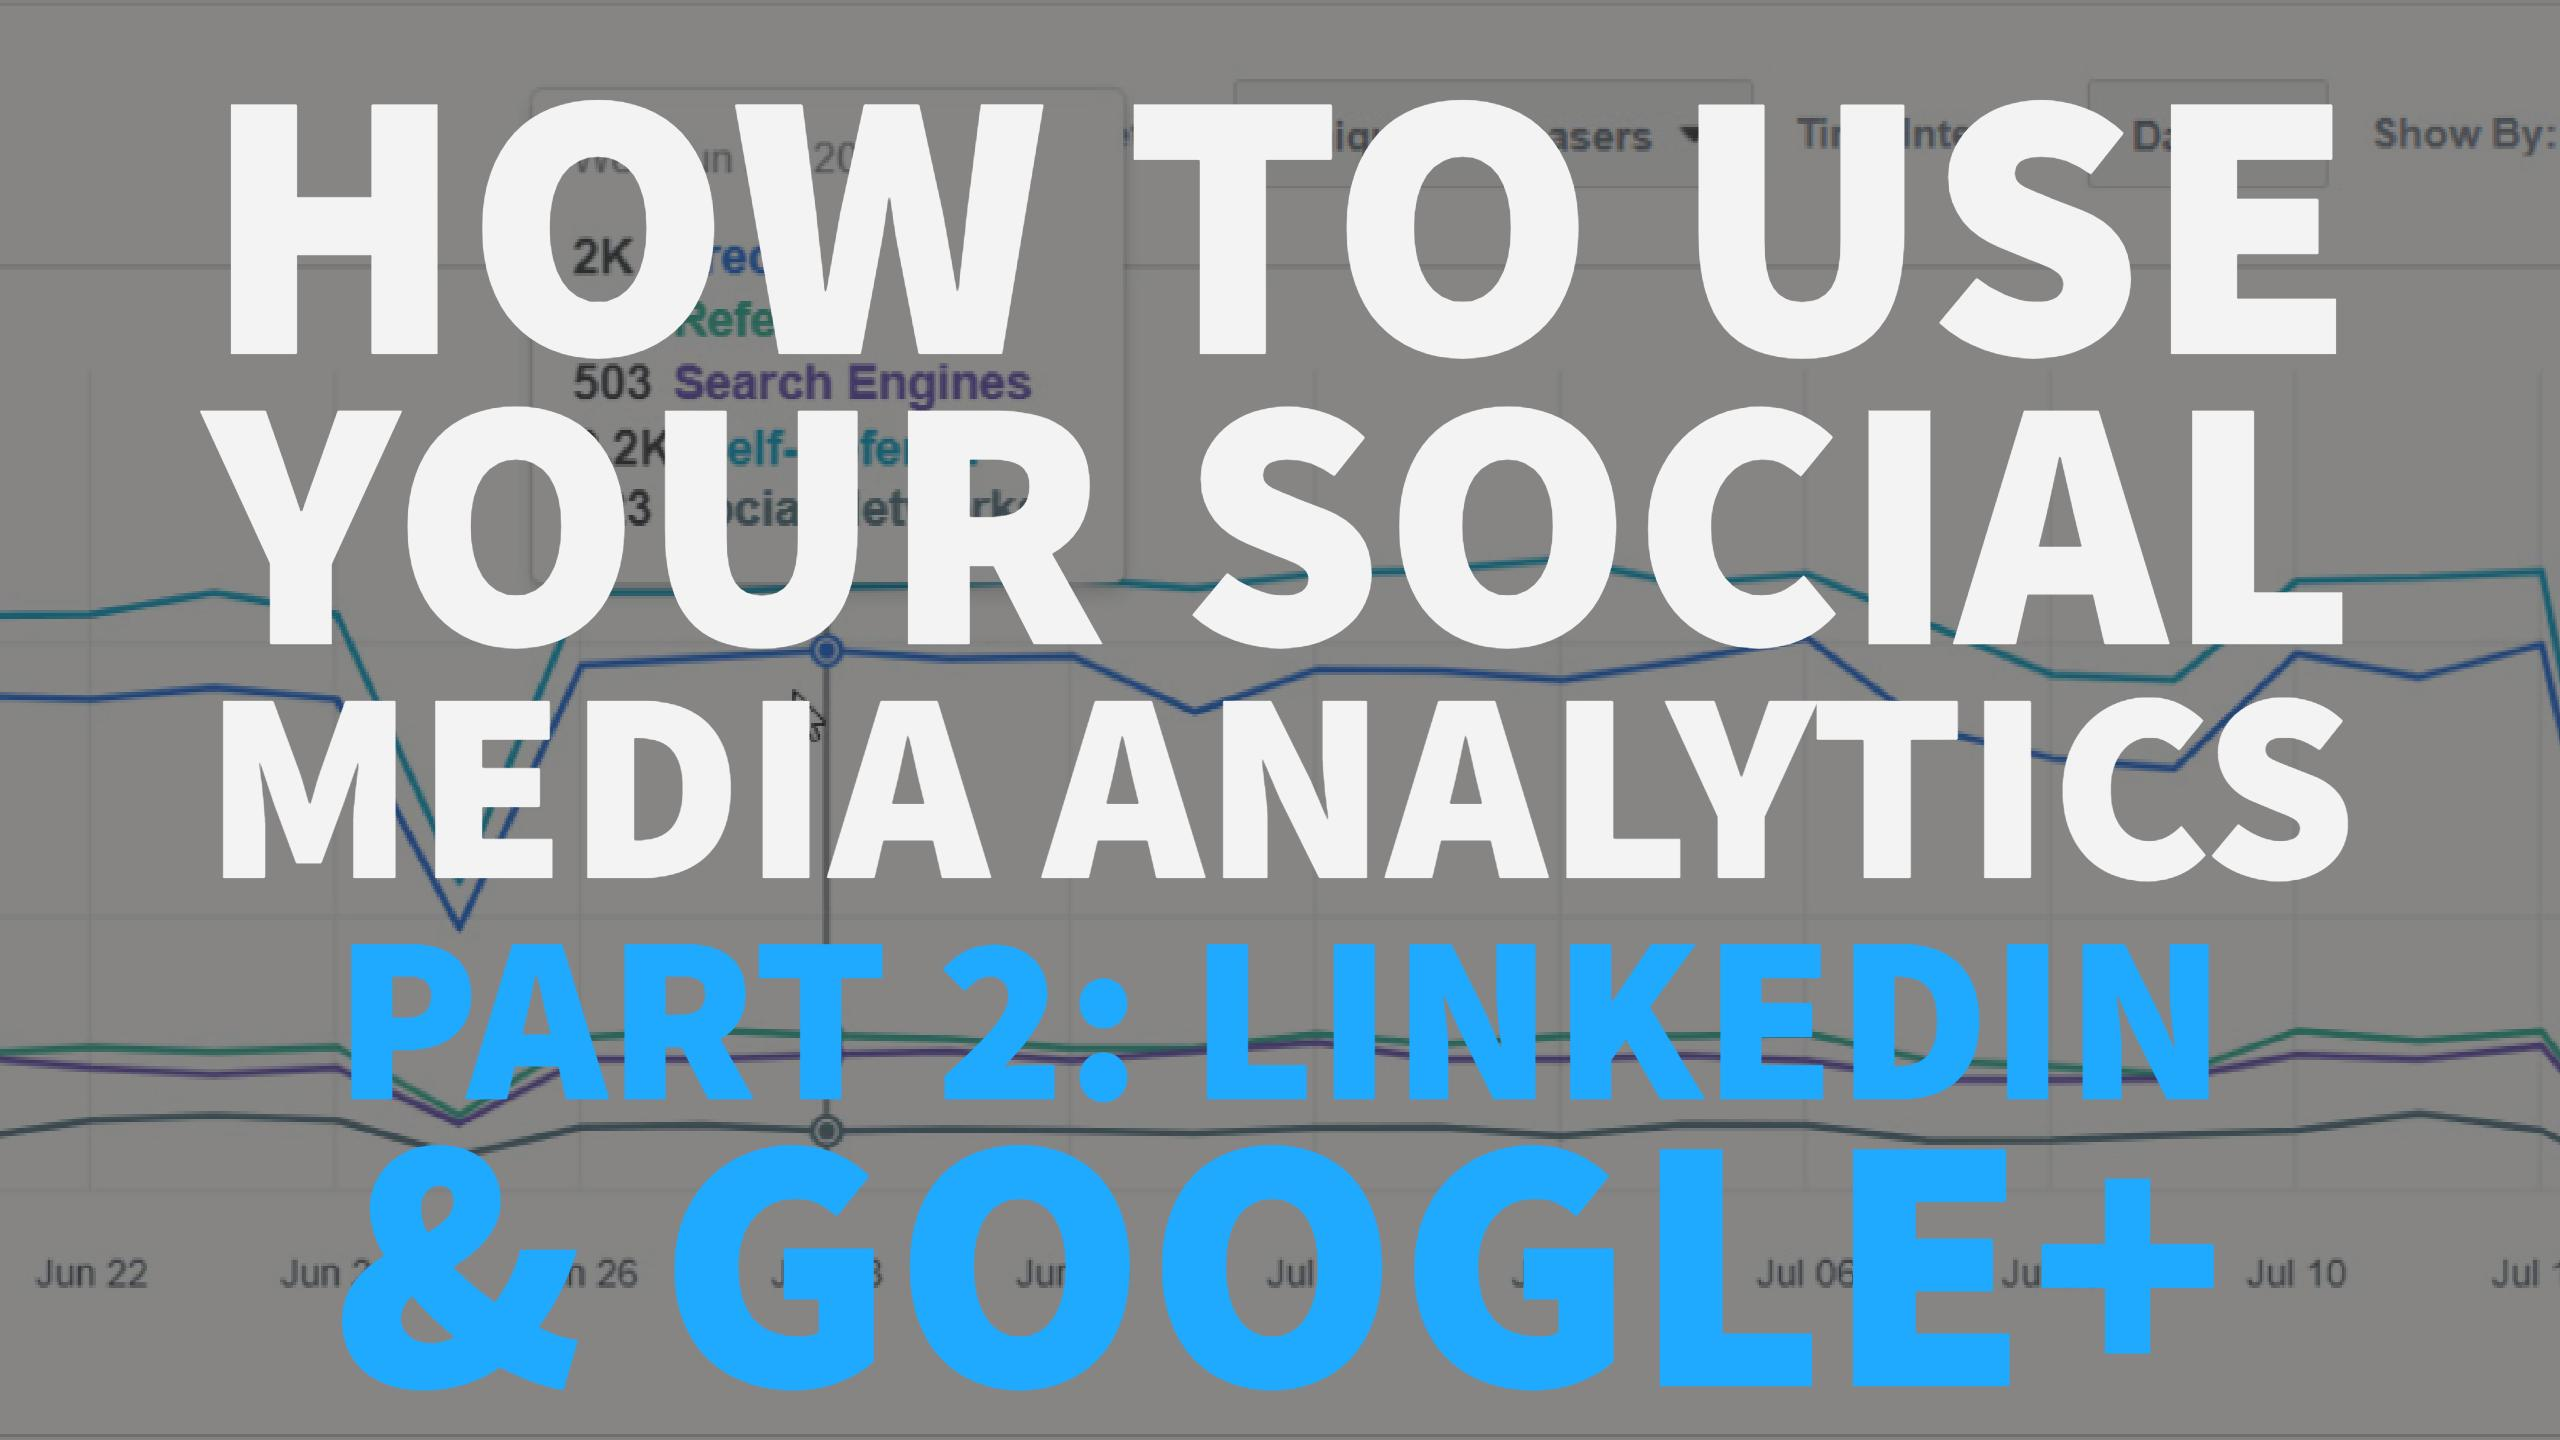 Social Media analytics pt. 2: LinkedIn and Google+